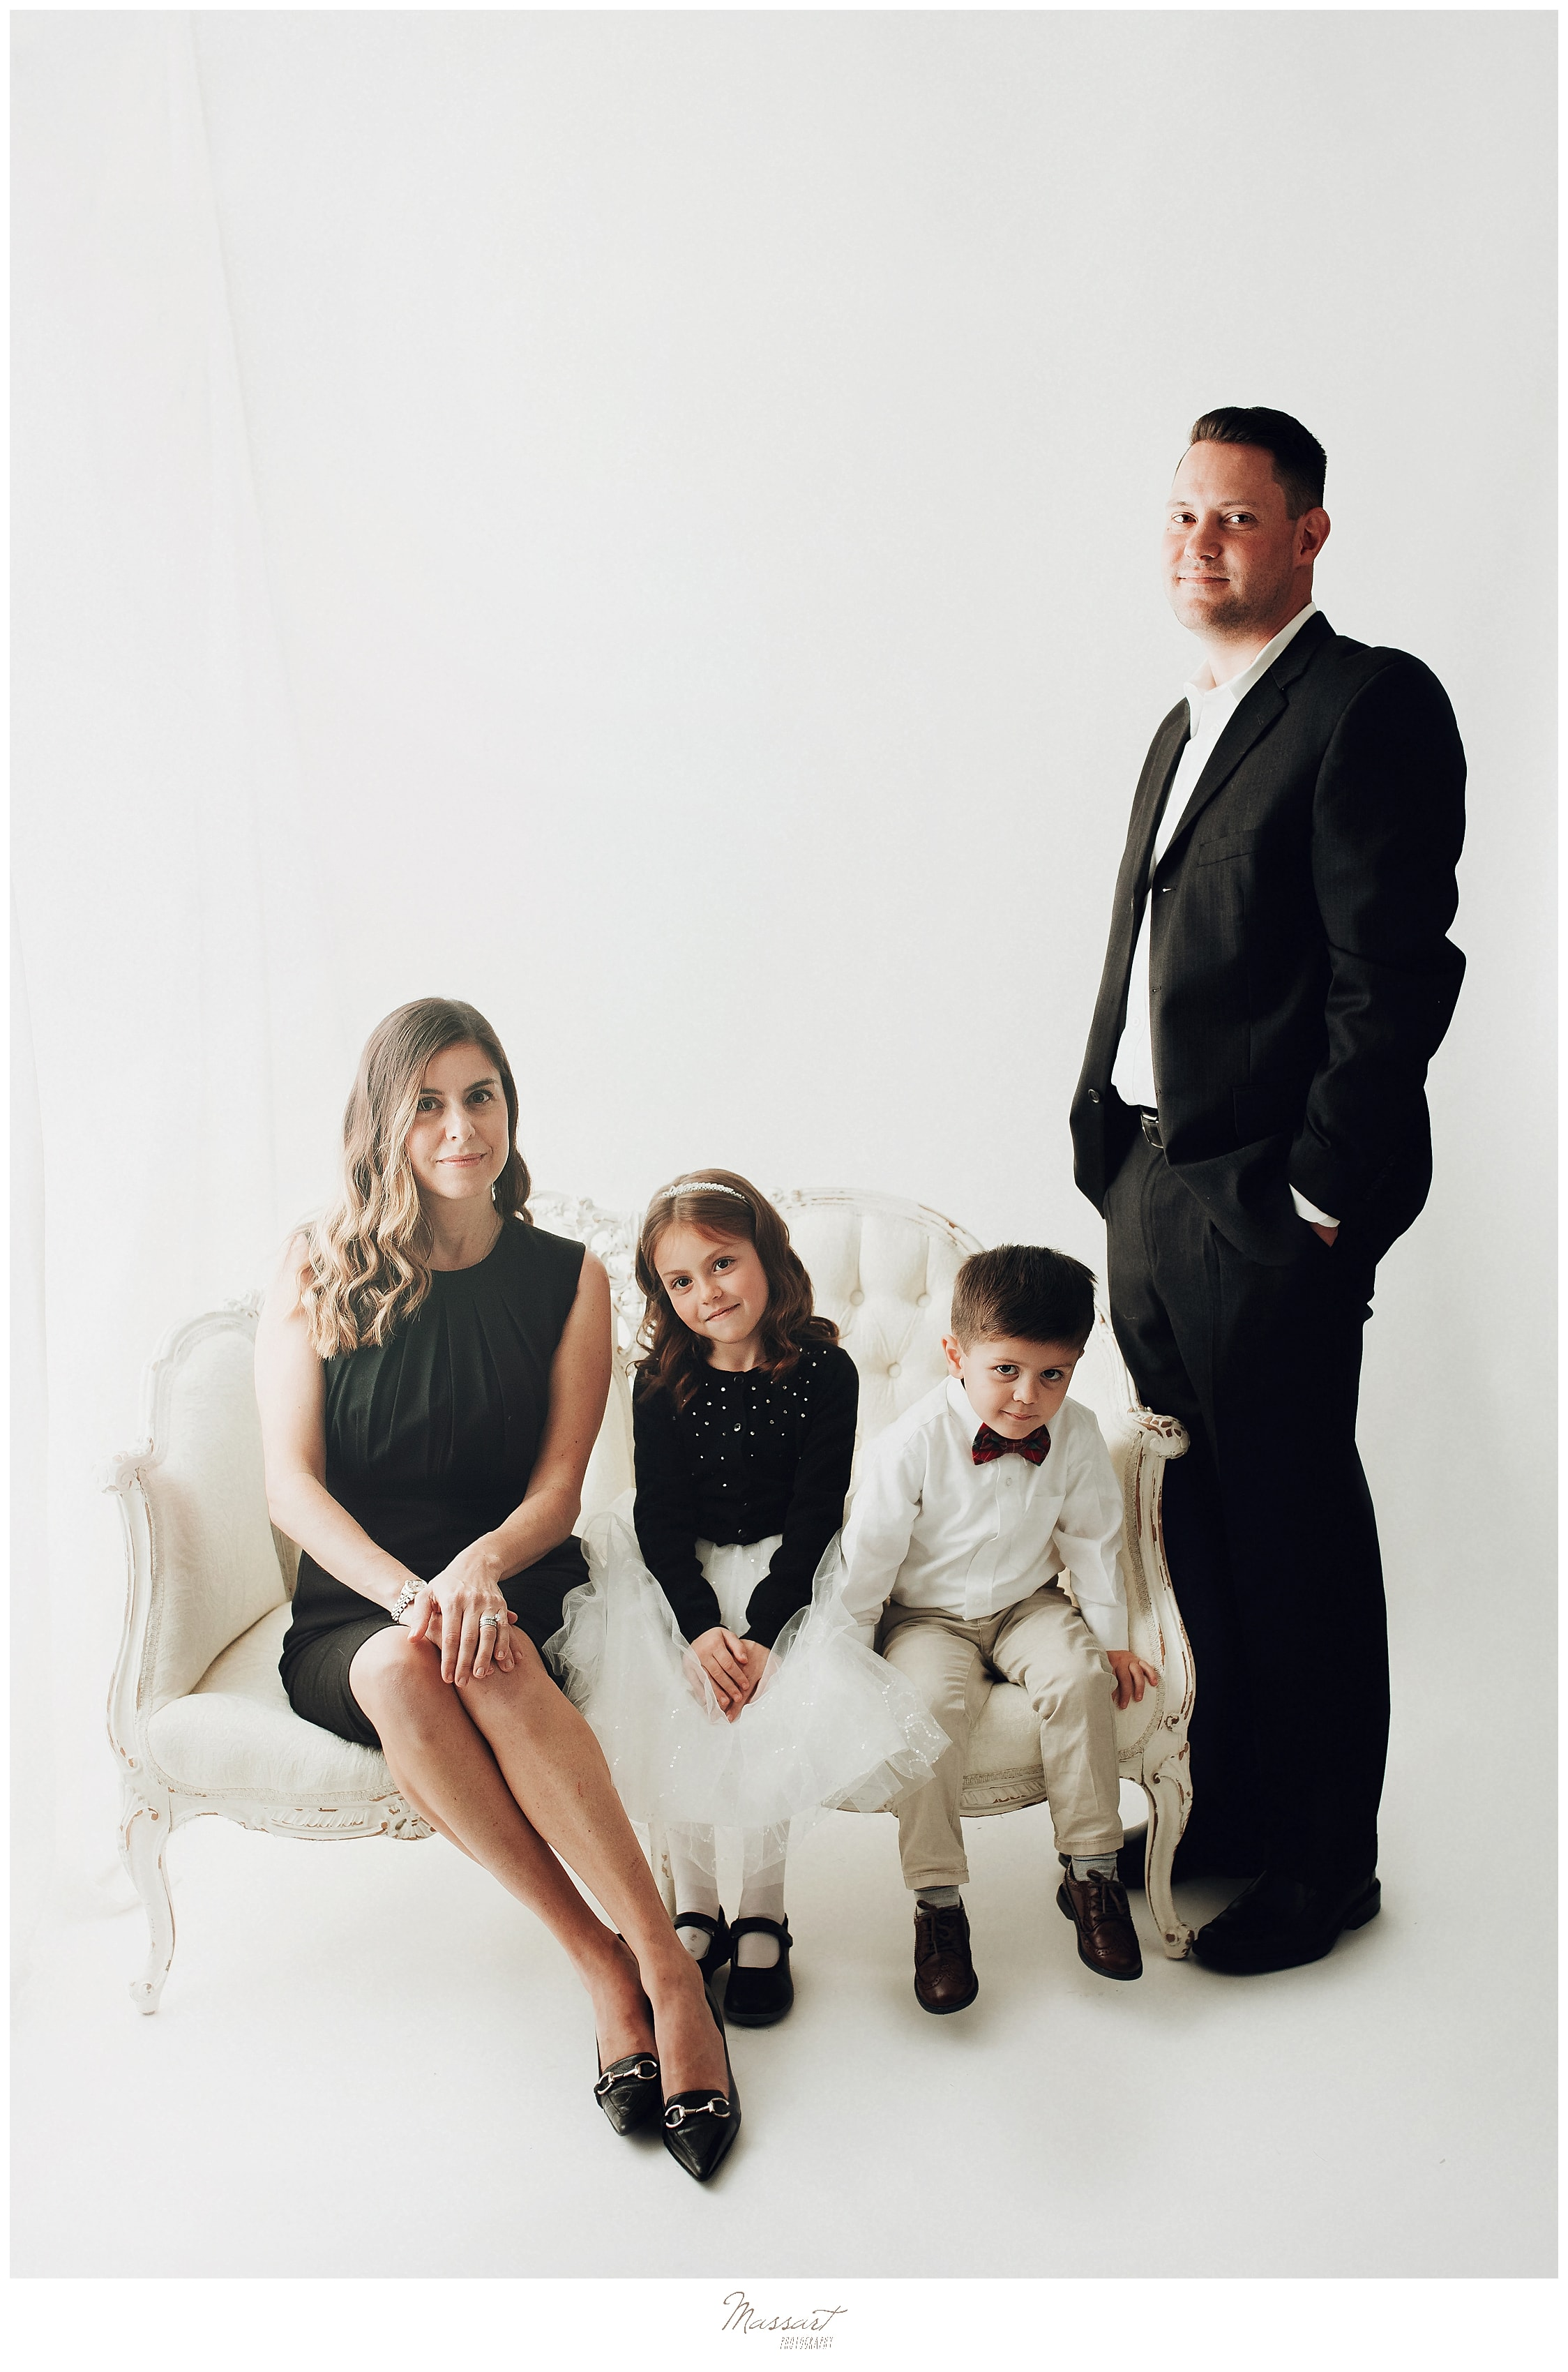 Family poses for a traditional timeless portrait at a Rhode Island photo studio during their family session